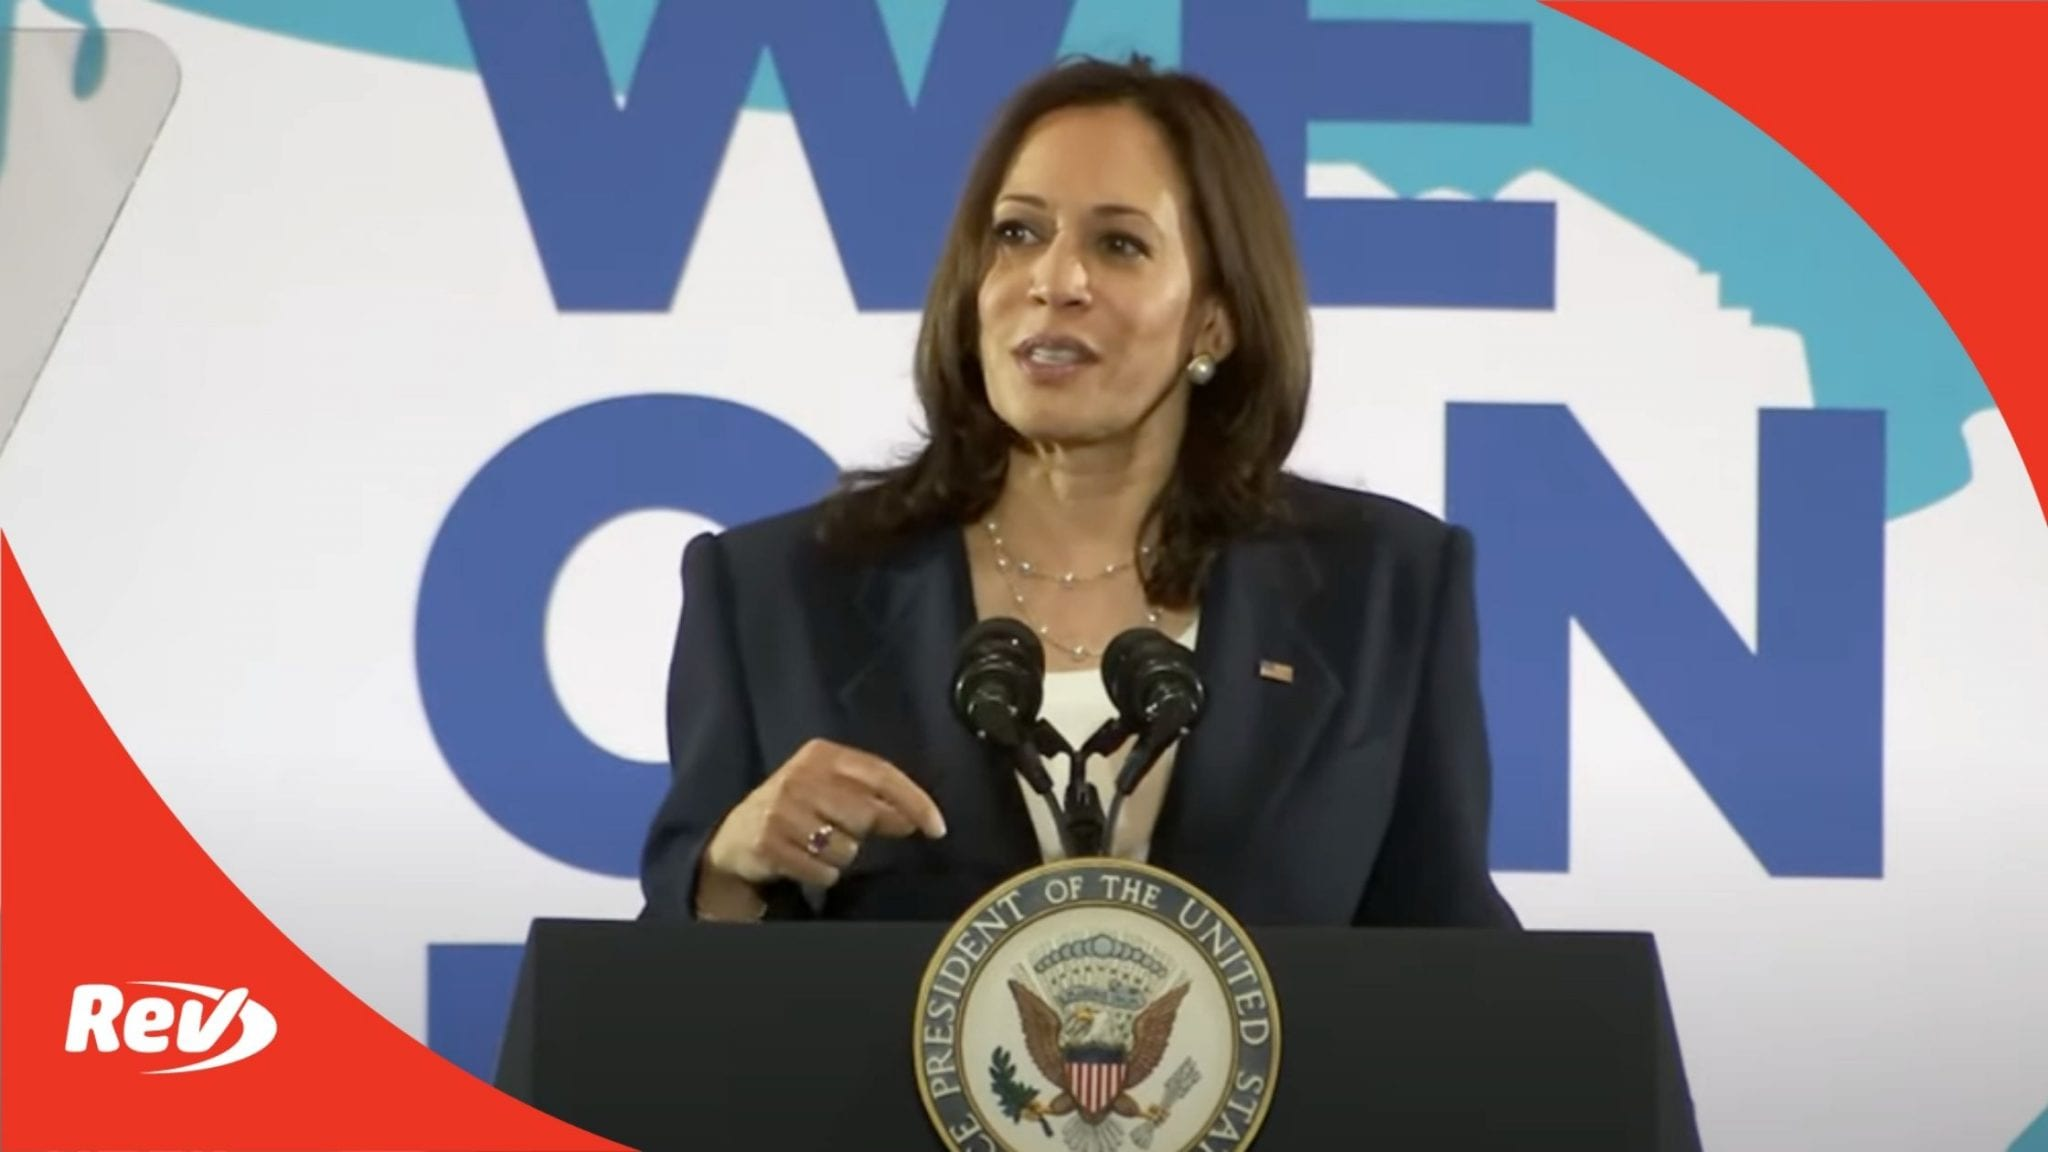 Kamala Harris speech on mobilizing more people to get vaccinated